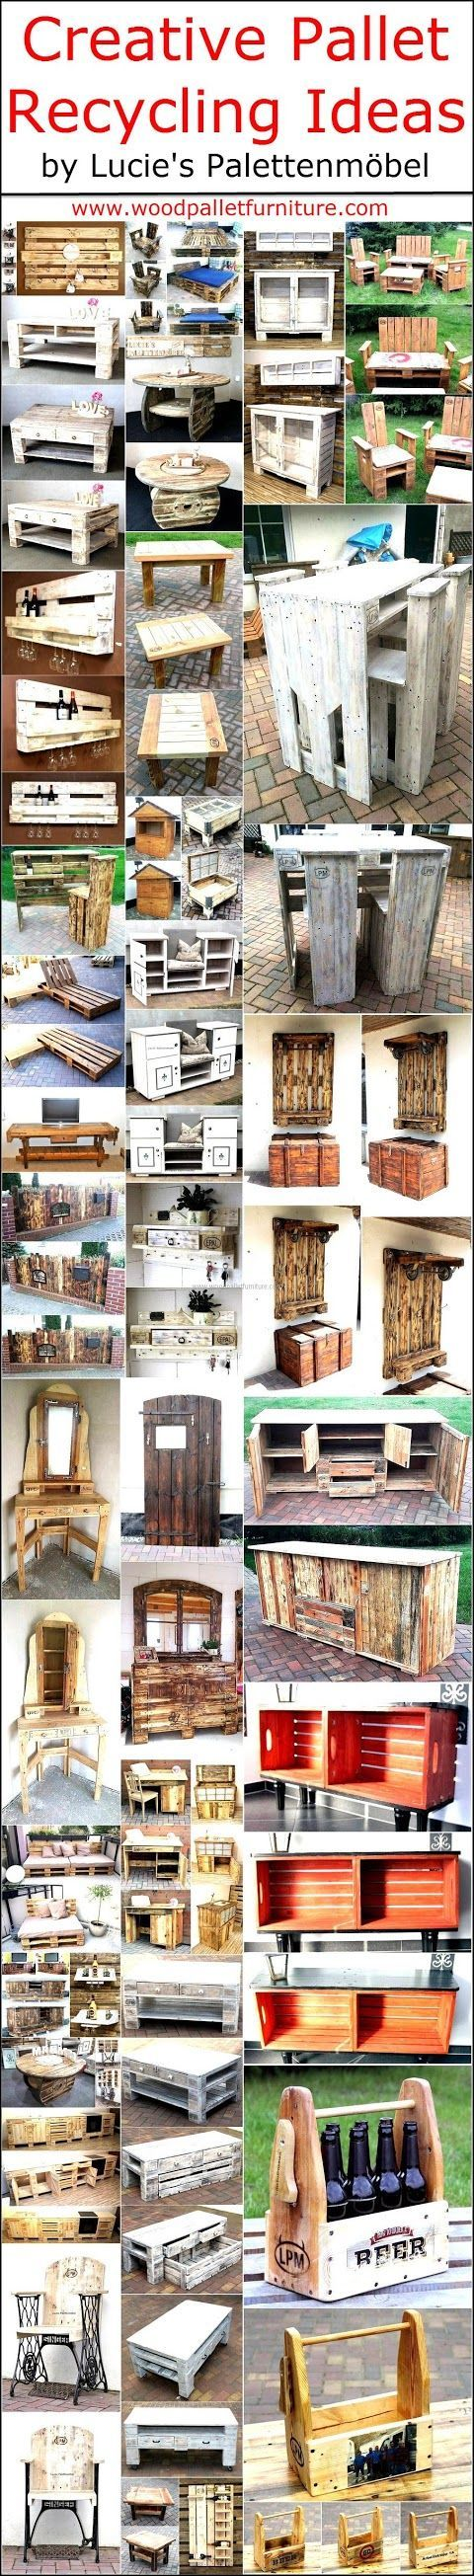 Creative Pallet Recycling Ideas by Lucie's Palettenmöbel